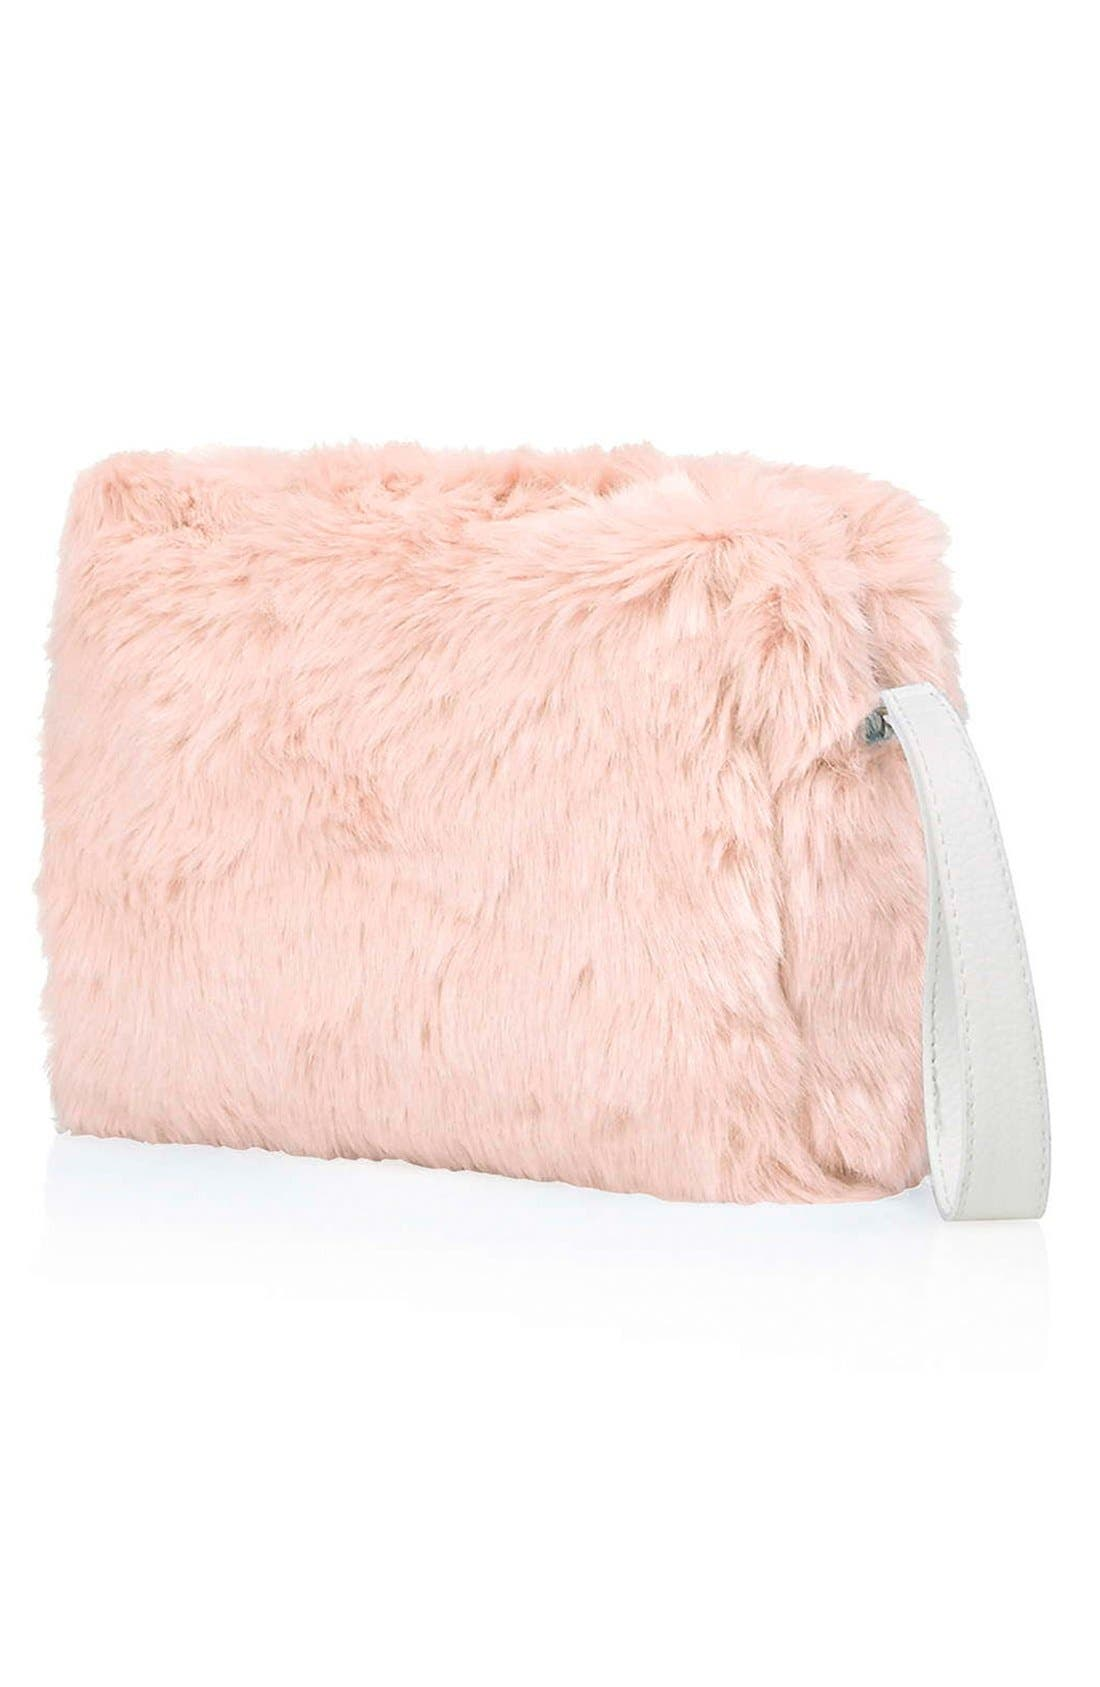 Alternate Image 3  - Topshop Faux Fur Clutch